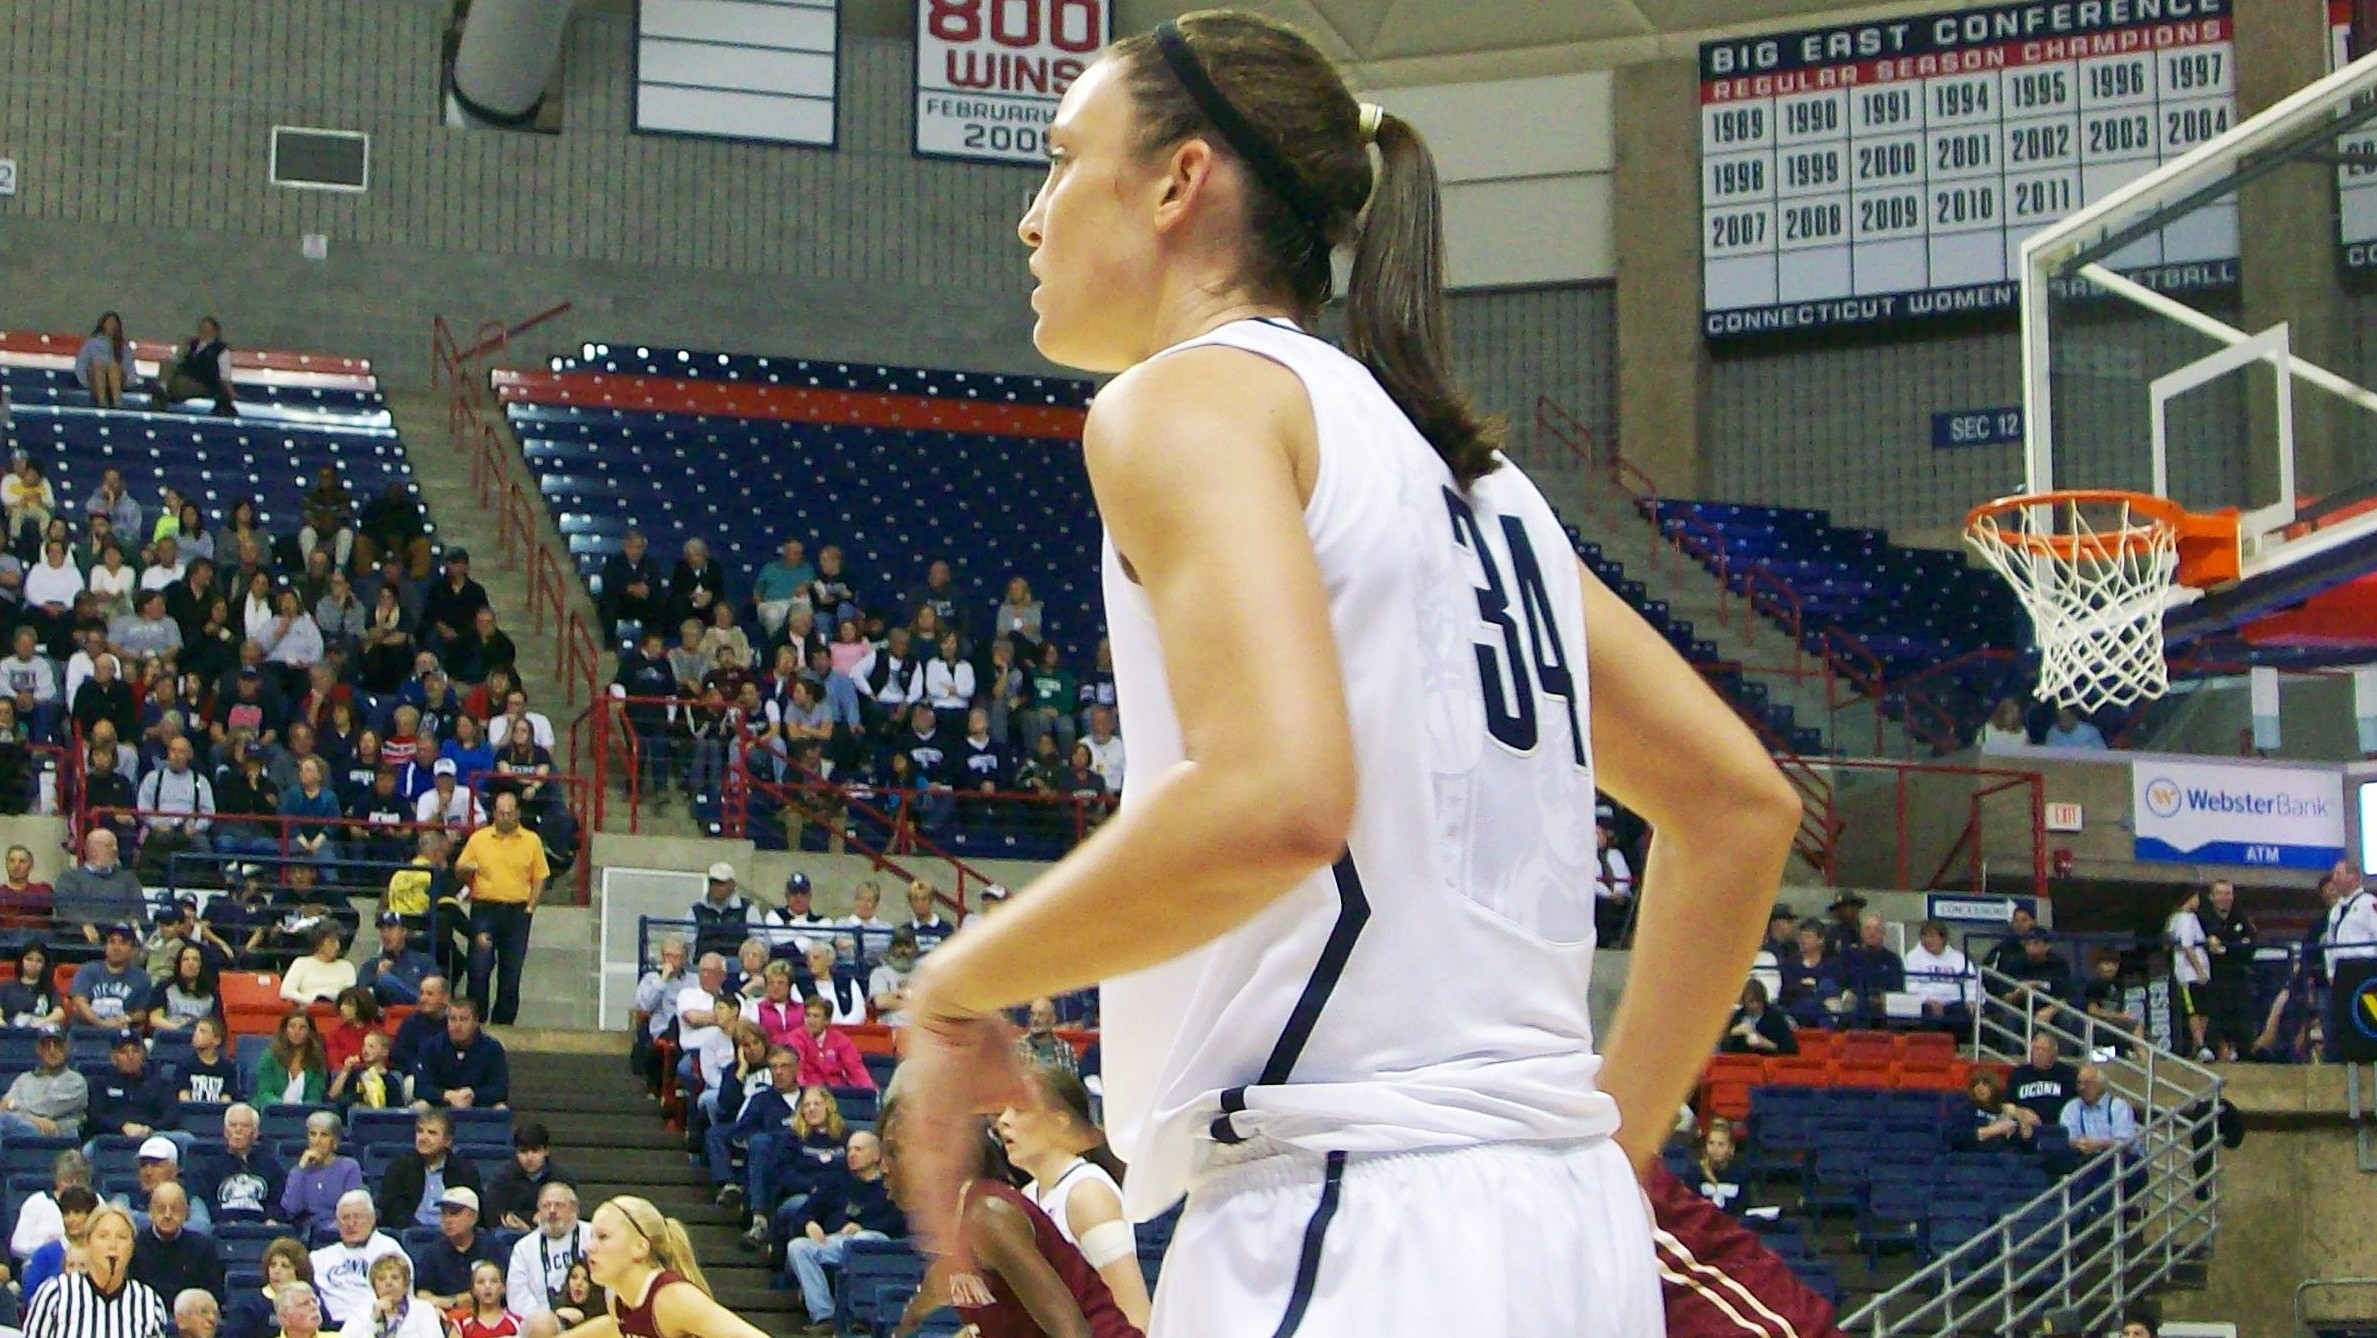 After routing Colgate 101-41, UConn prepares for more difficult stretch including No. 11 Maryland